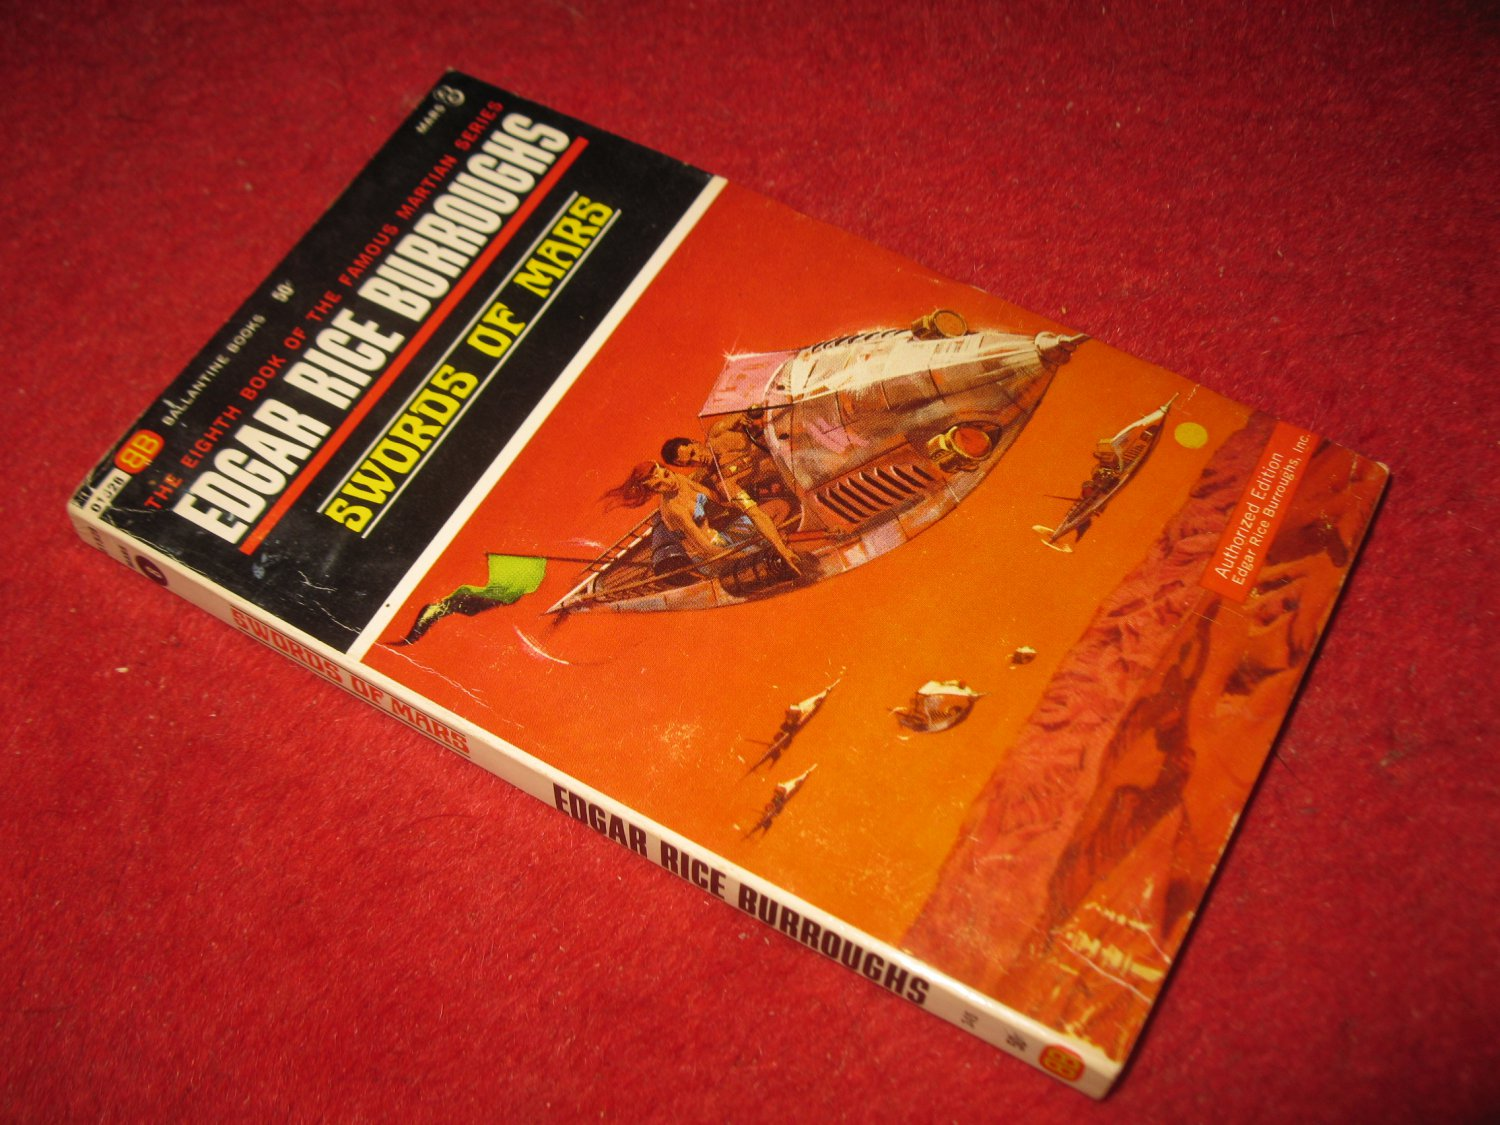 1969 Mars #8: Swords of Mars - by Edgar Rice Burroughs - Ballantine books - paperback